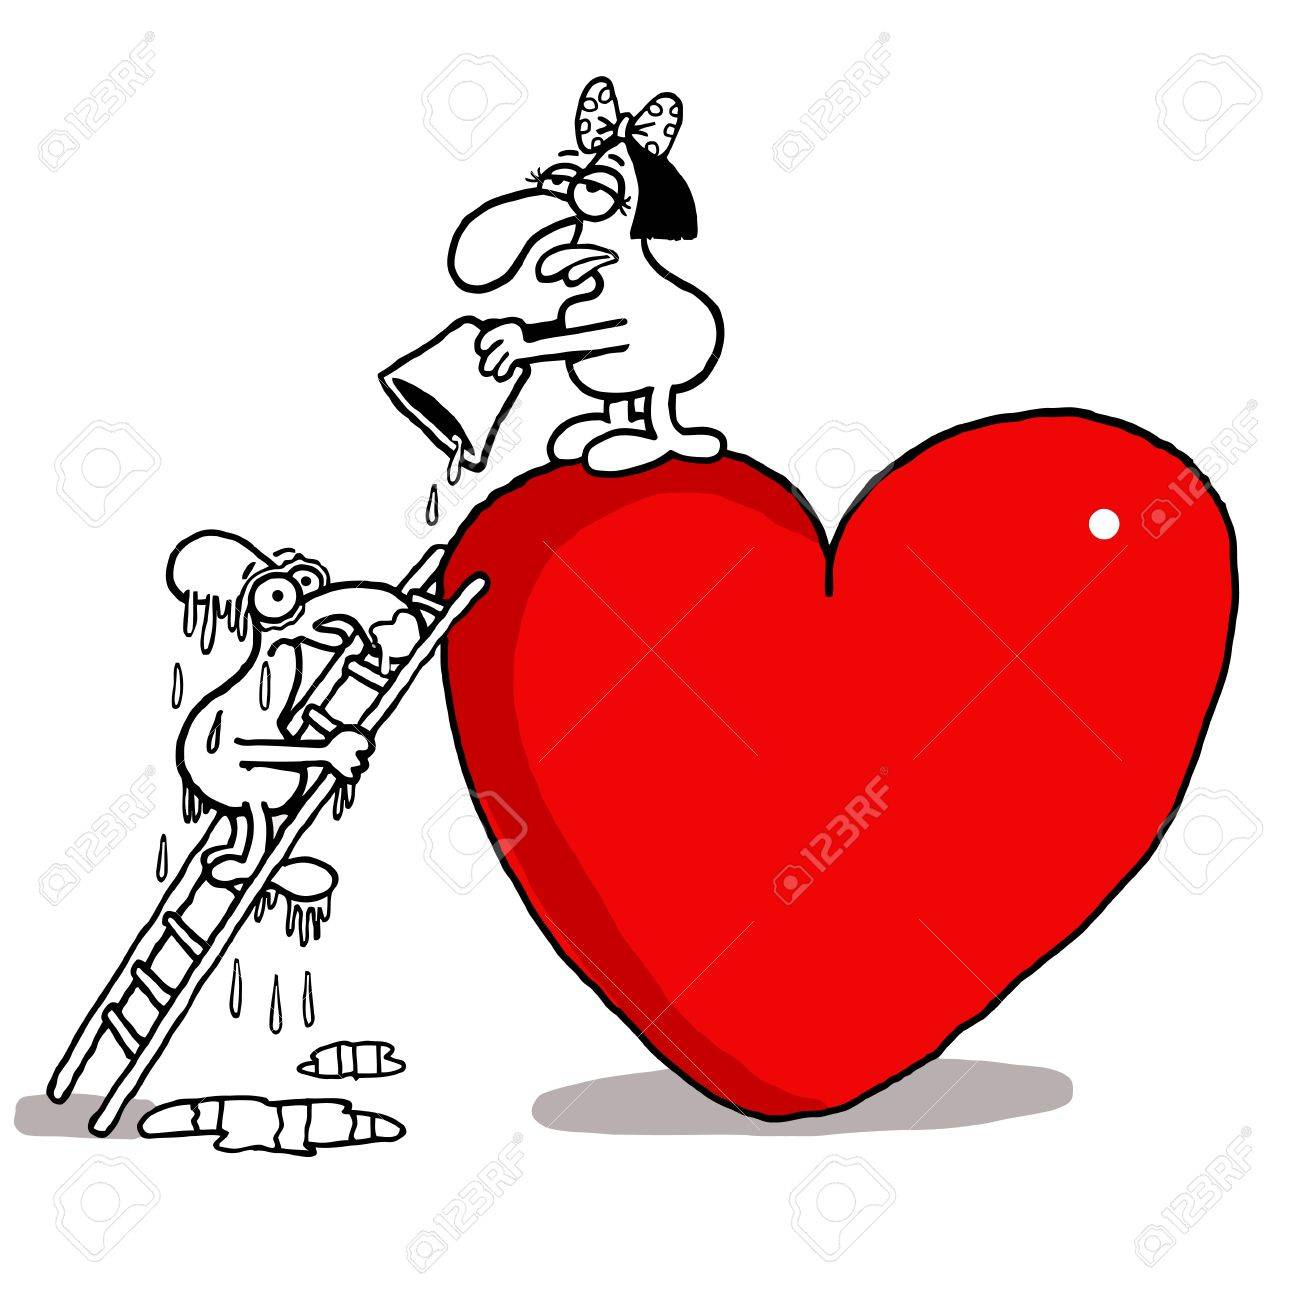 Vectorel humorous cartoon about Valentines day and Love Stock Vector - 21218587